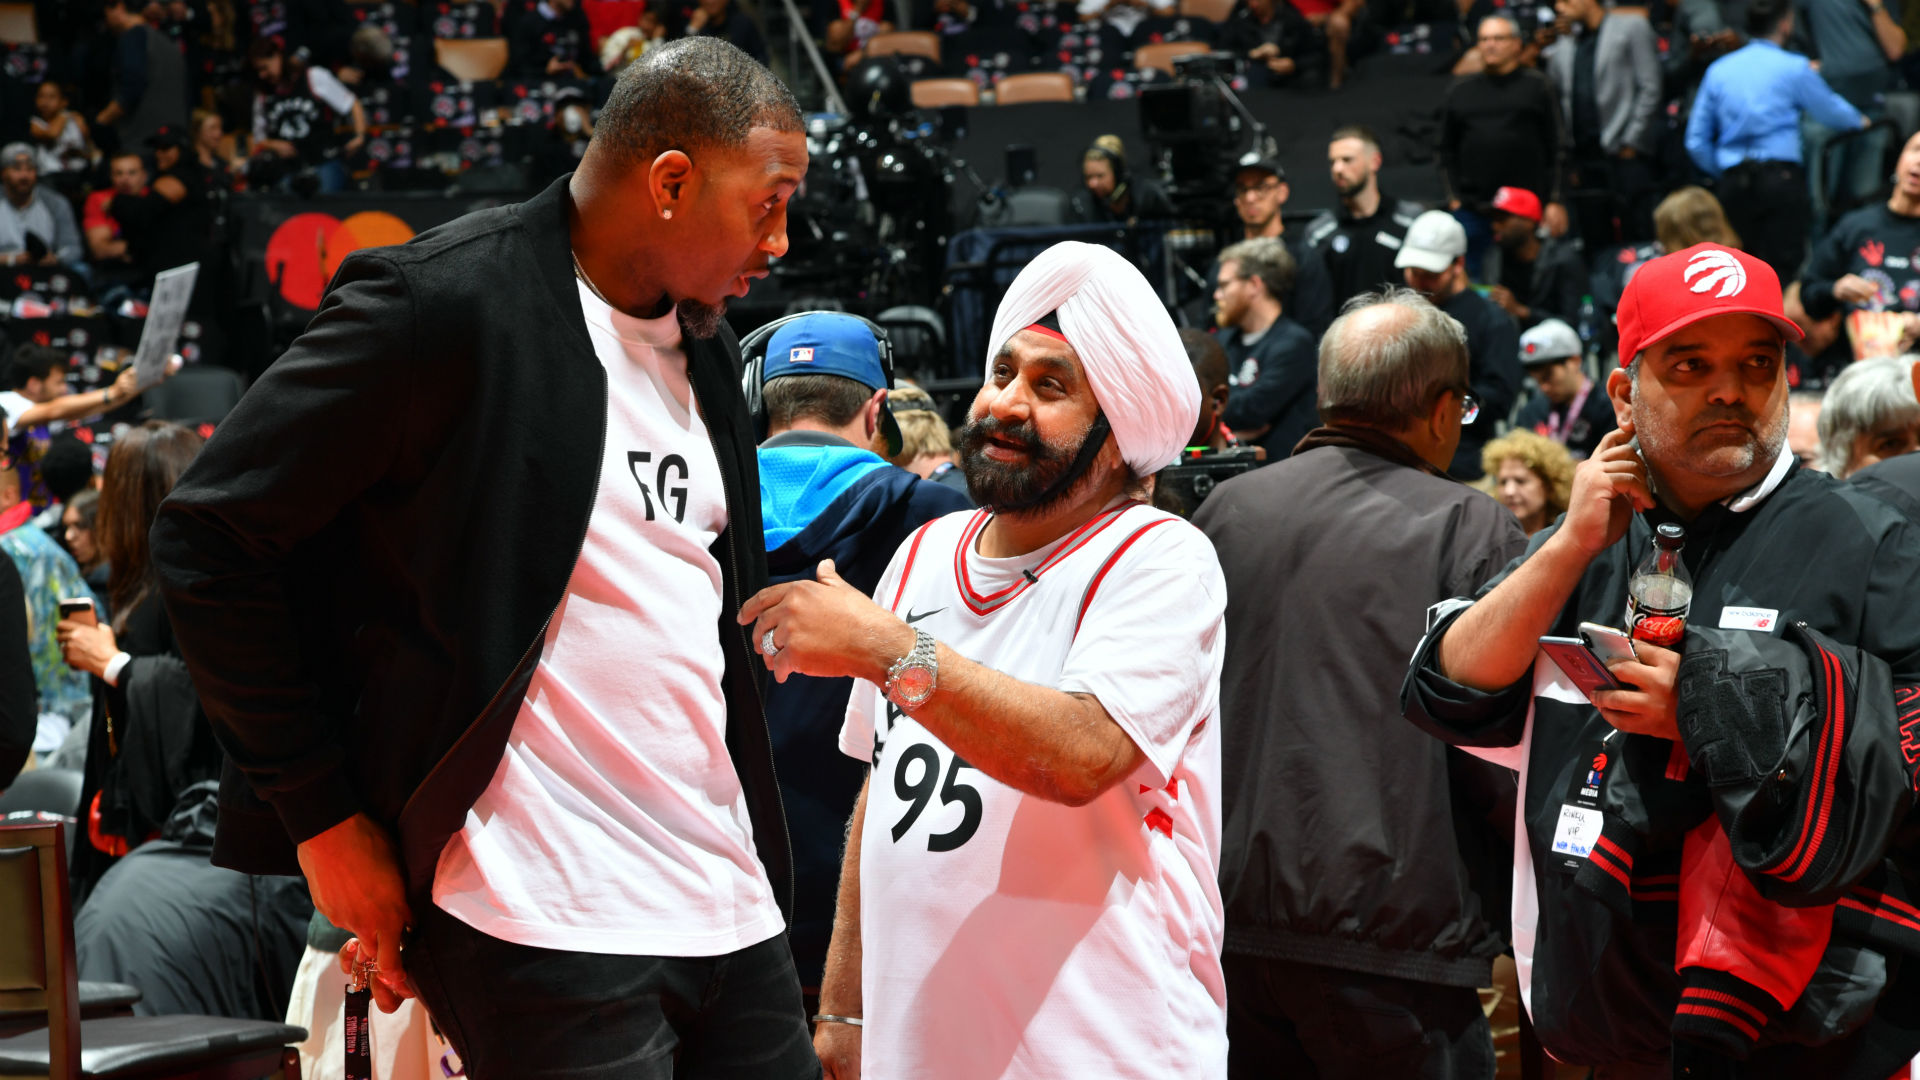 Nav Bhatia talks with Hall of Famer and former Raptor Tracy McGrady prior to Game 1 of the 2019 NBA Finals.